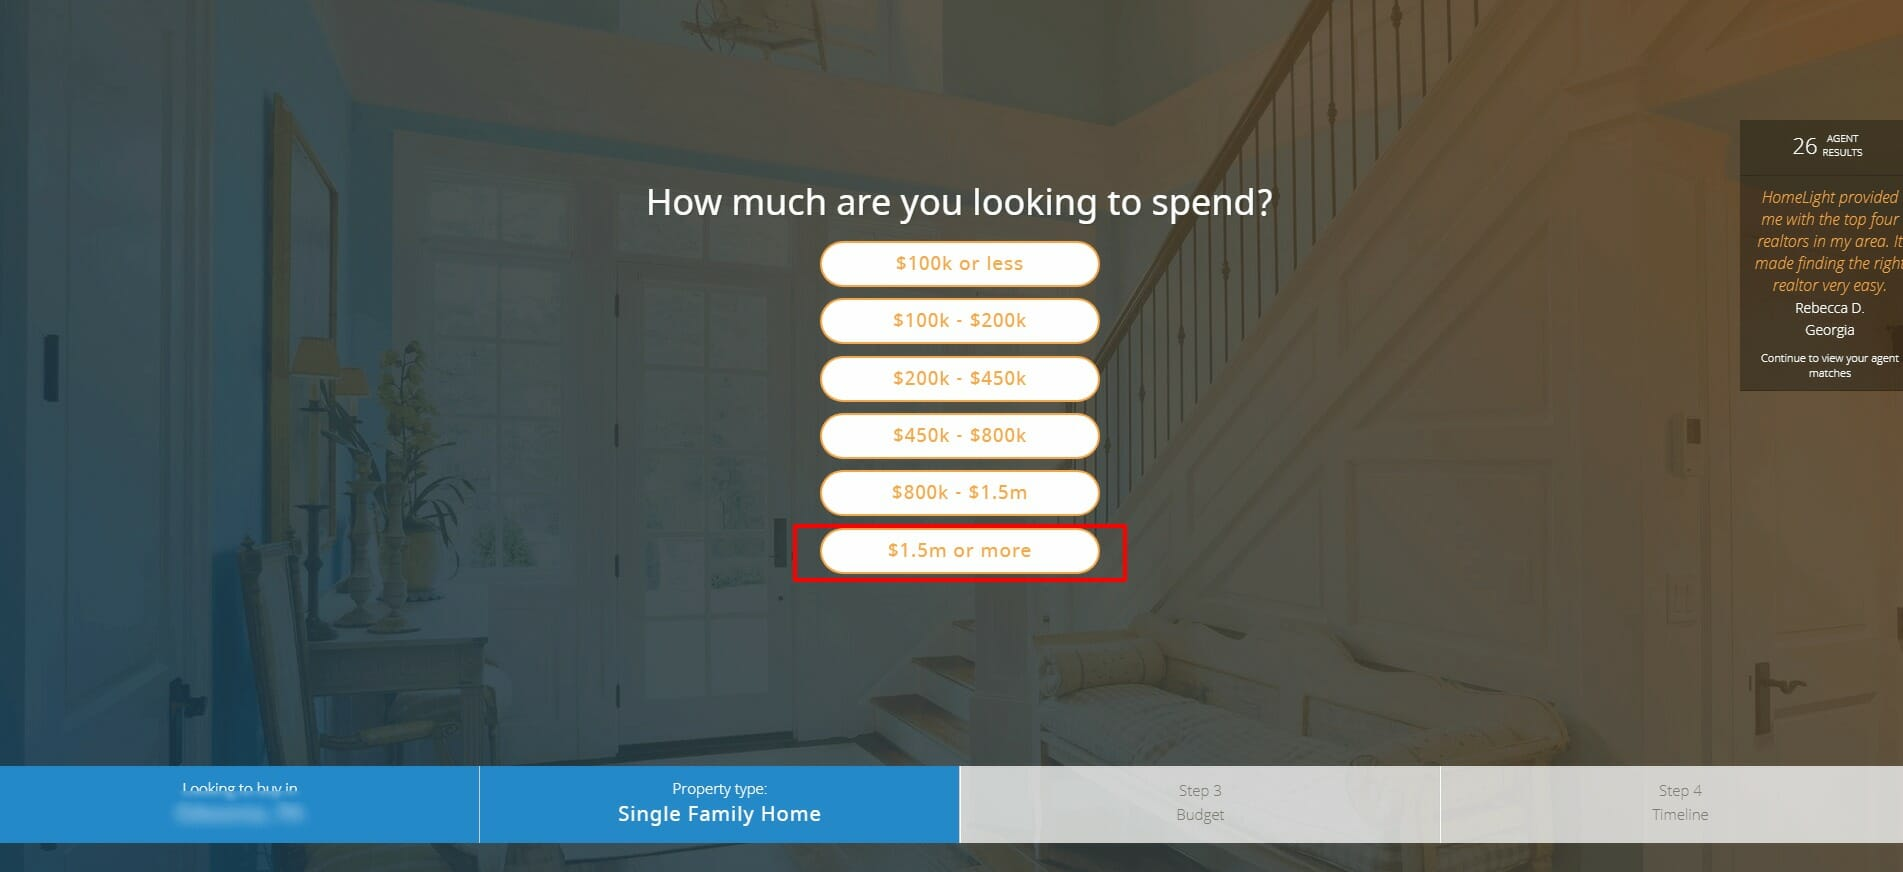 how much are you looking to spend on a house